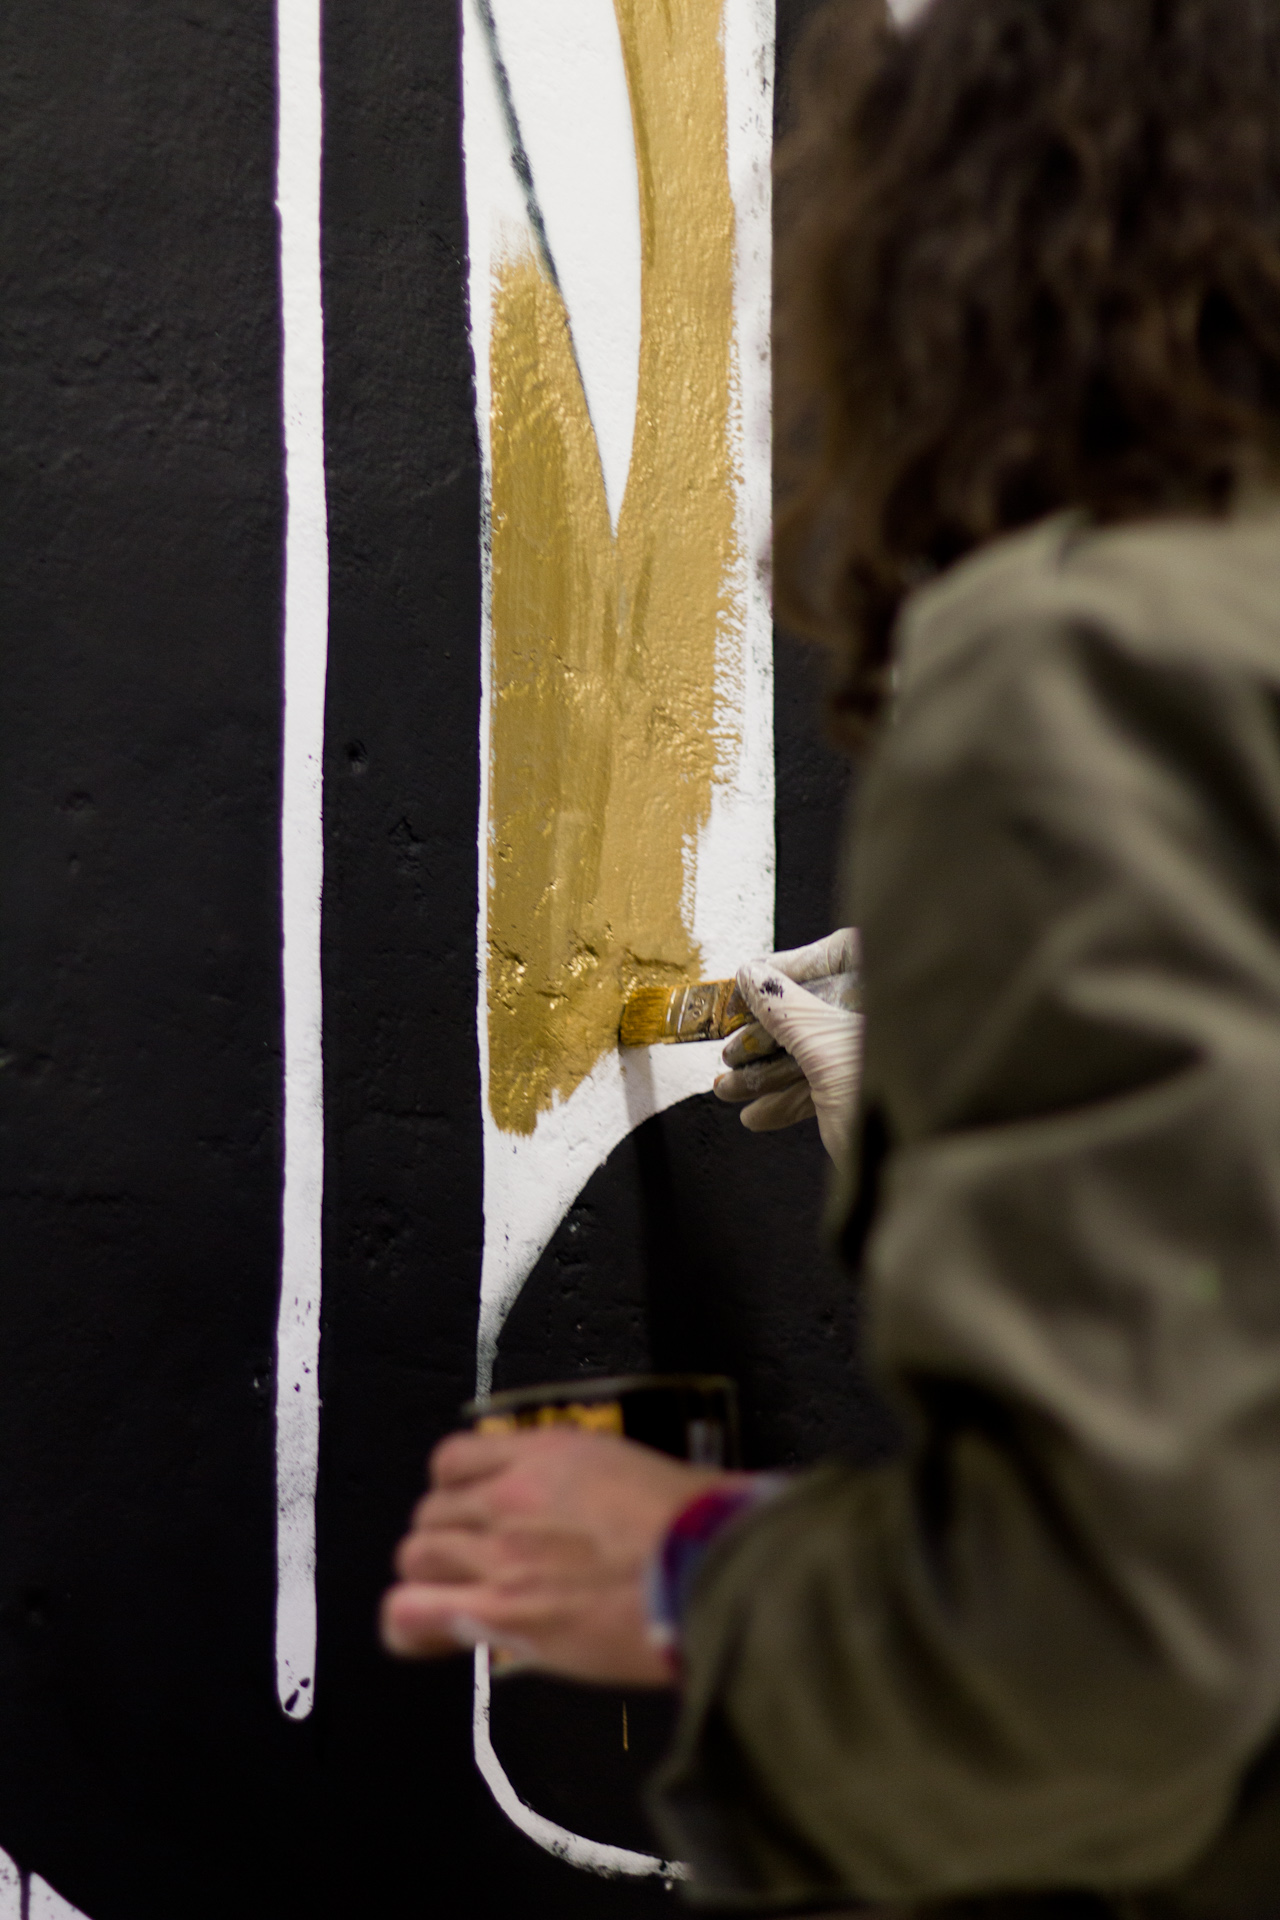 luca-font-show-at-bonobolabo-and-wall-painting-with-basik-11